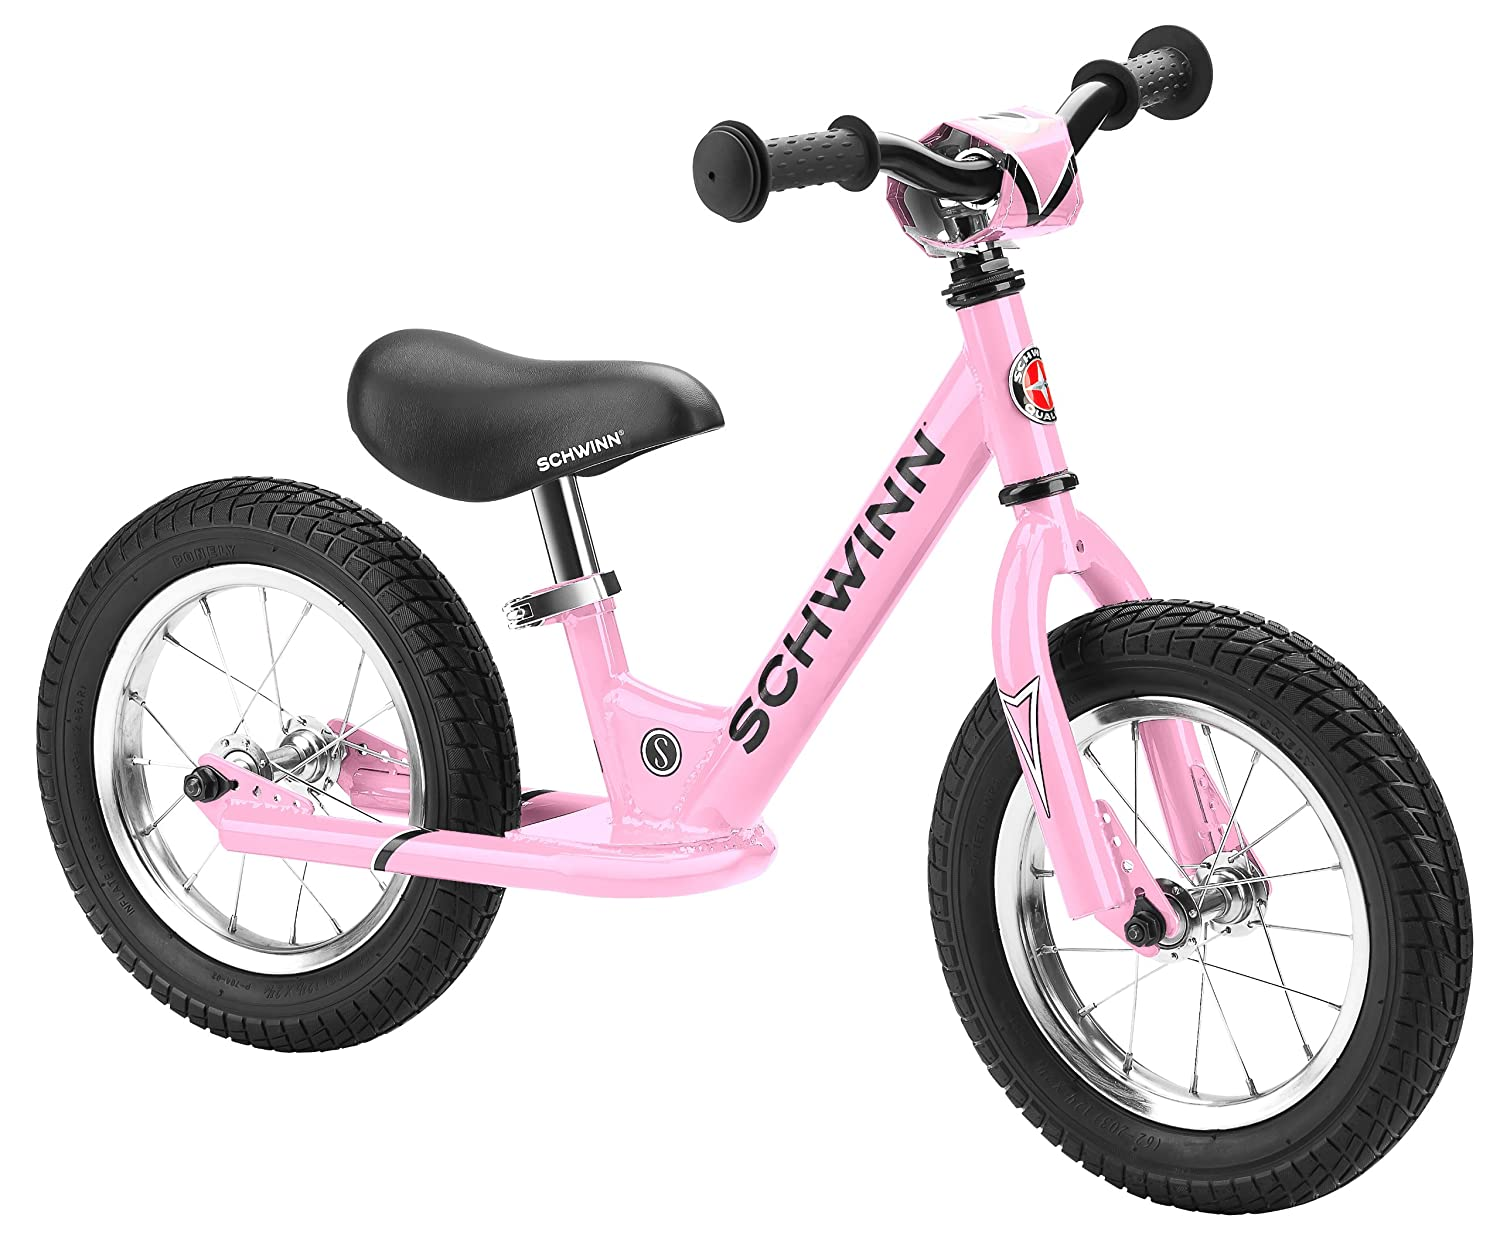 Best Balance Bikes For 4 Year Olds Kid s Balance Bike Blue